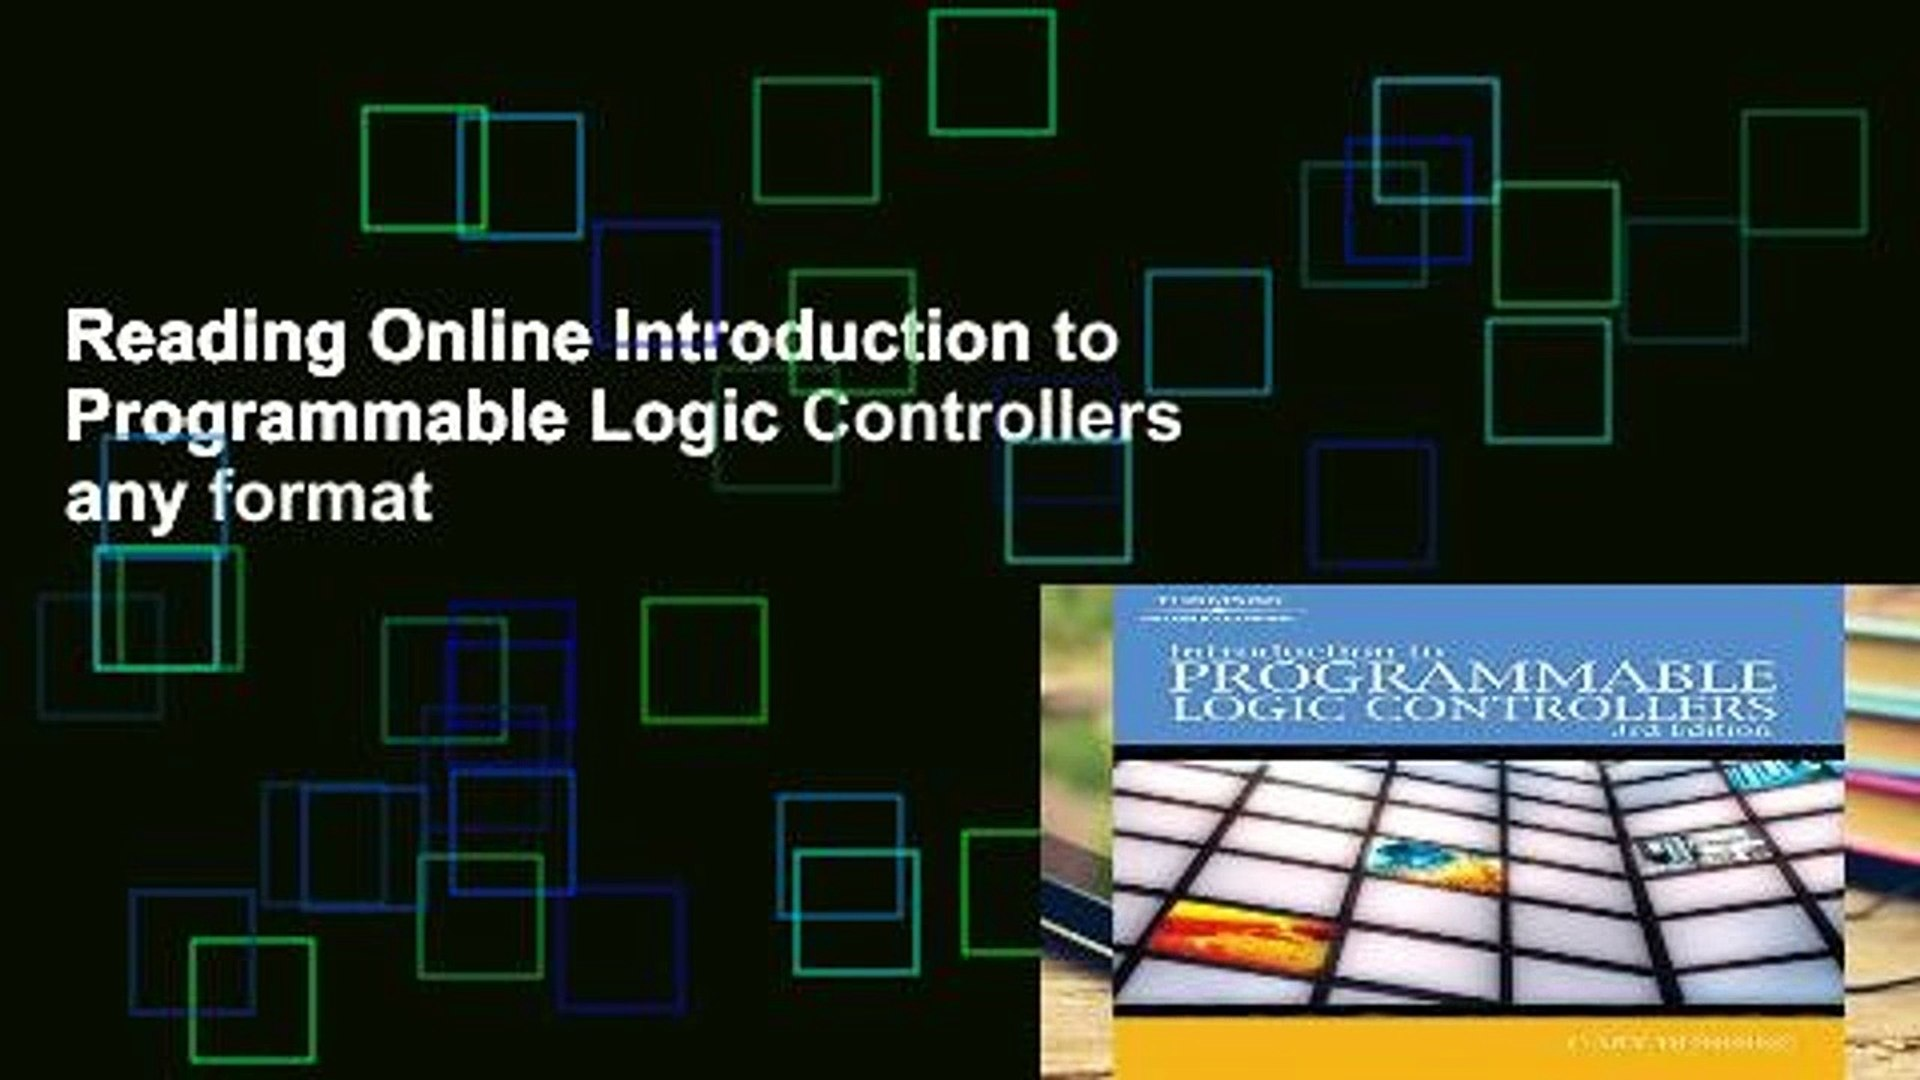 Reading Online Introduction to Programmable Logic Controllers any format